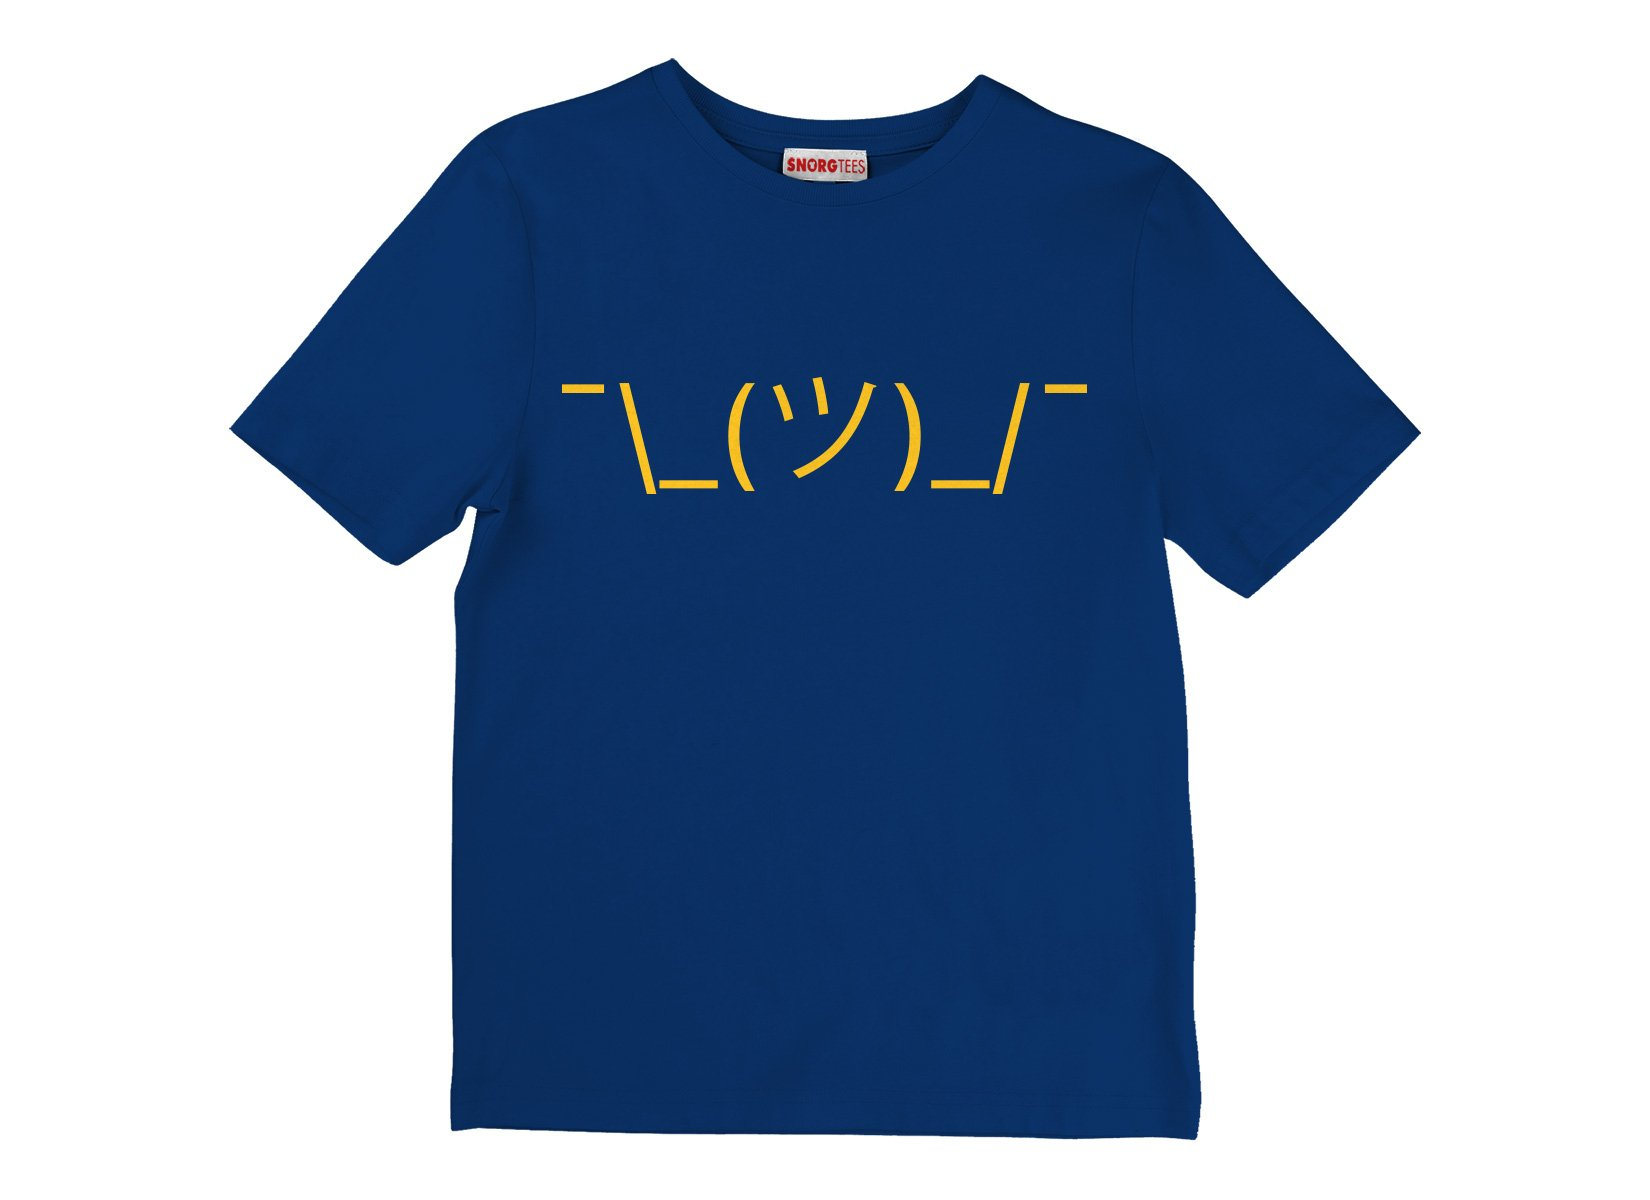 Shrug Emoji on Kids T-Shirt